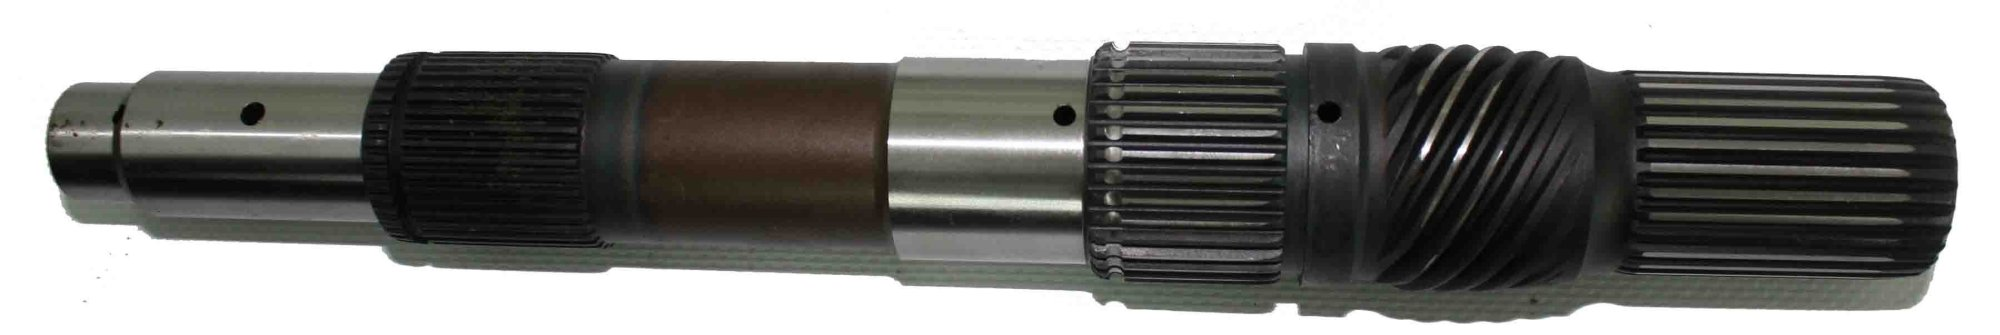 hight resolution of the one piece gm 700r4 output shaft used in this kit is made out of 4340 alloy steel this output shaft is manufactured with the highest quality materials